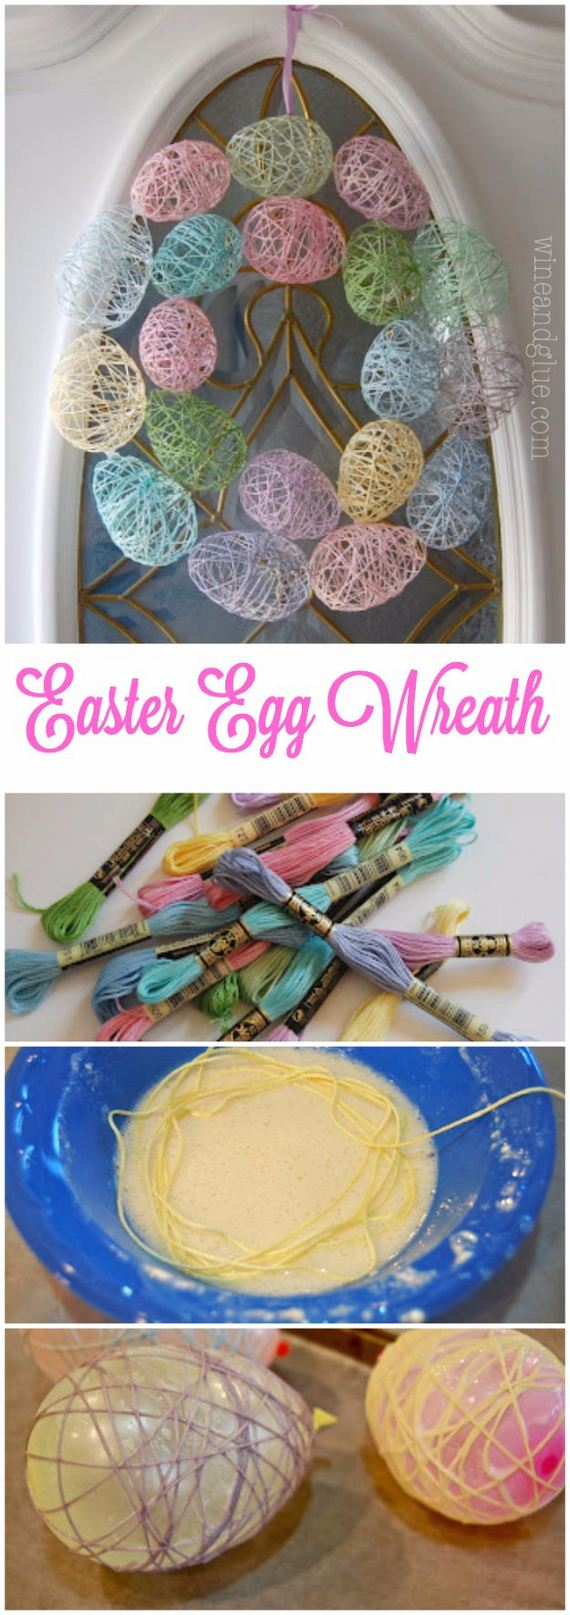 01-DIY-Easter-Decorations